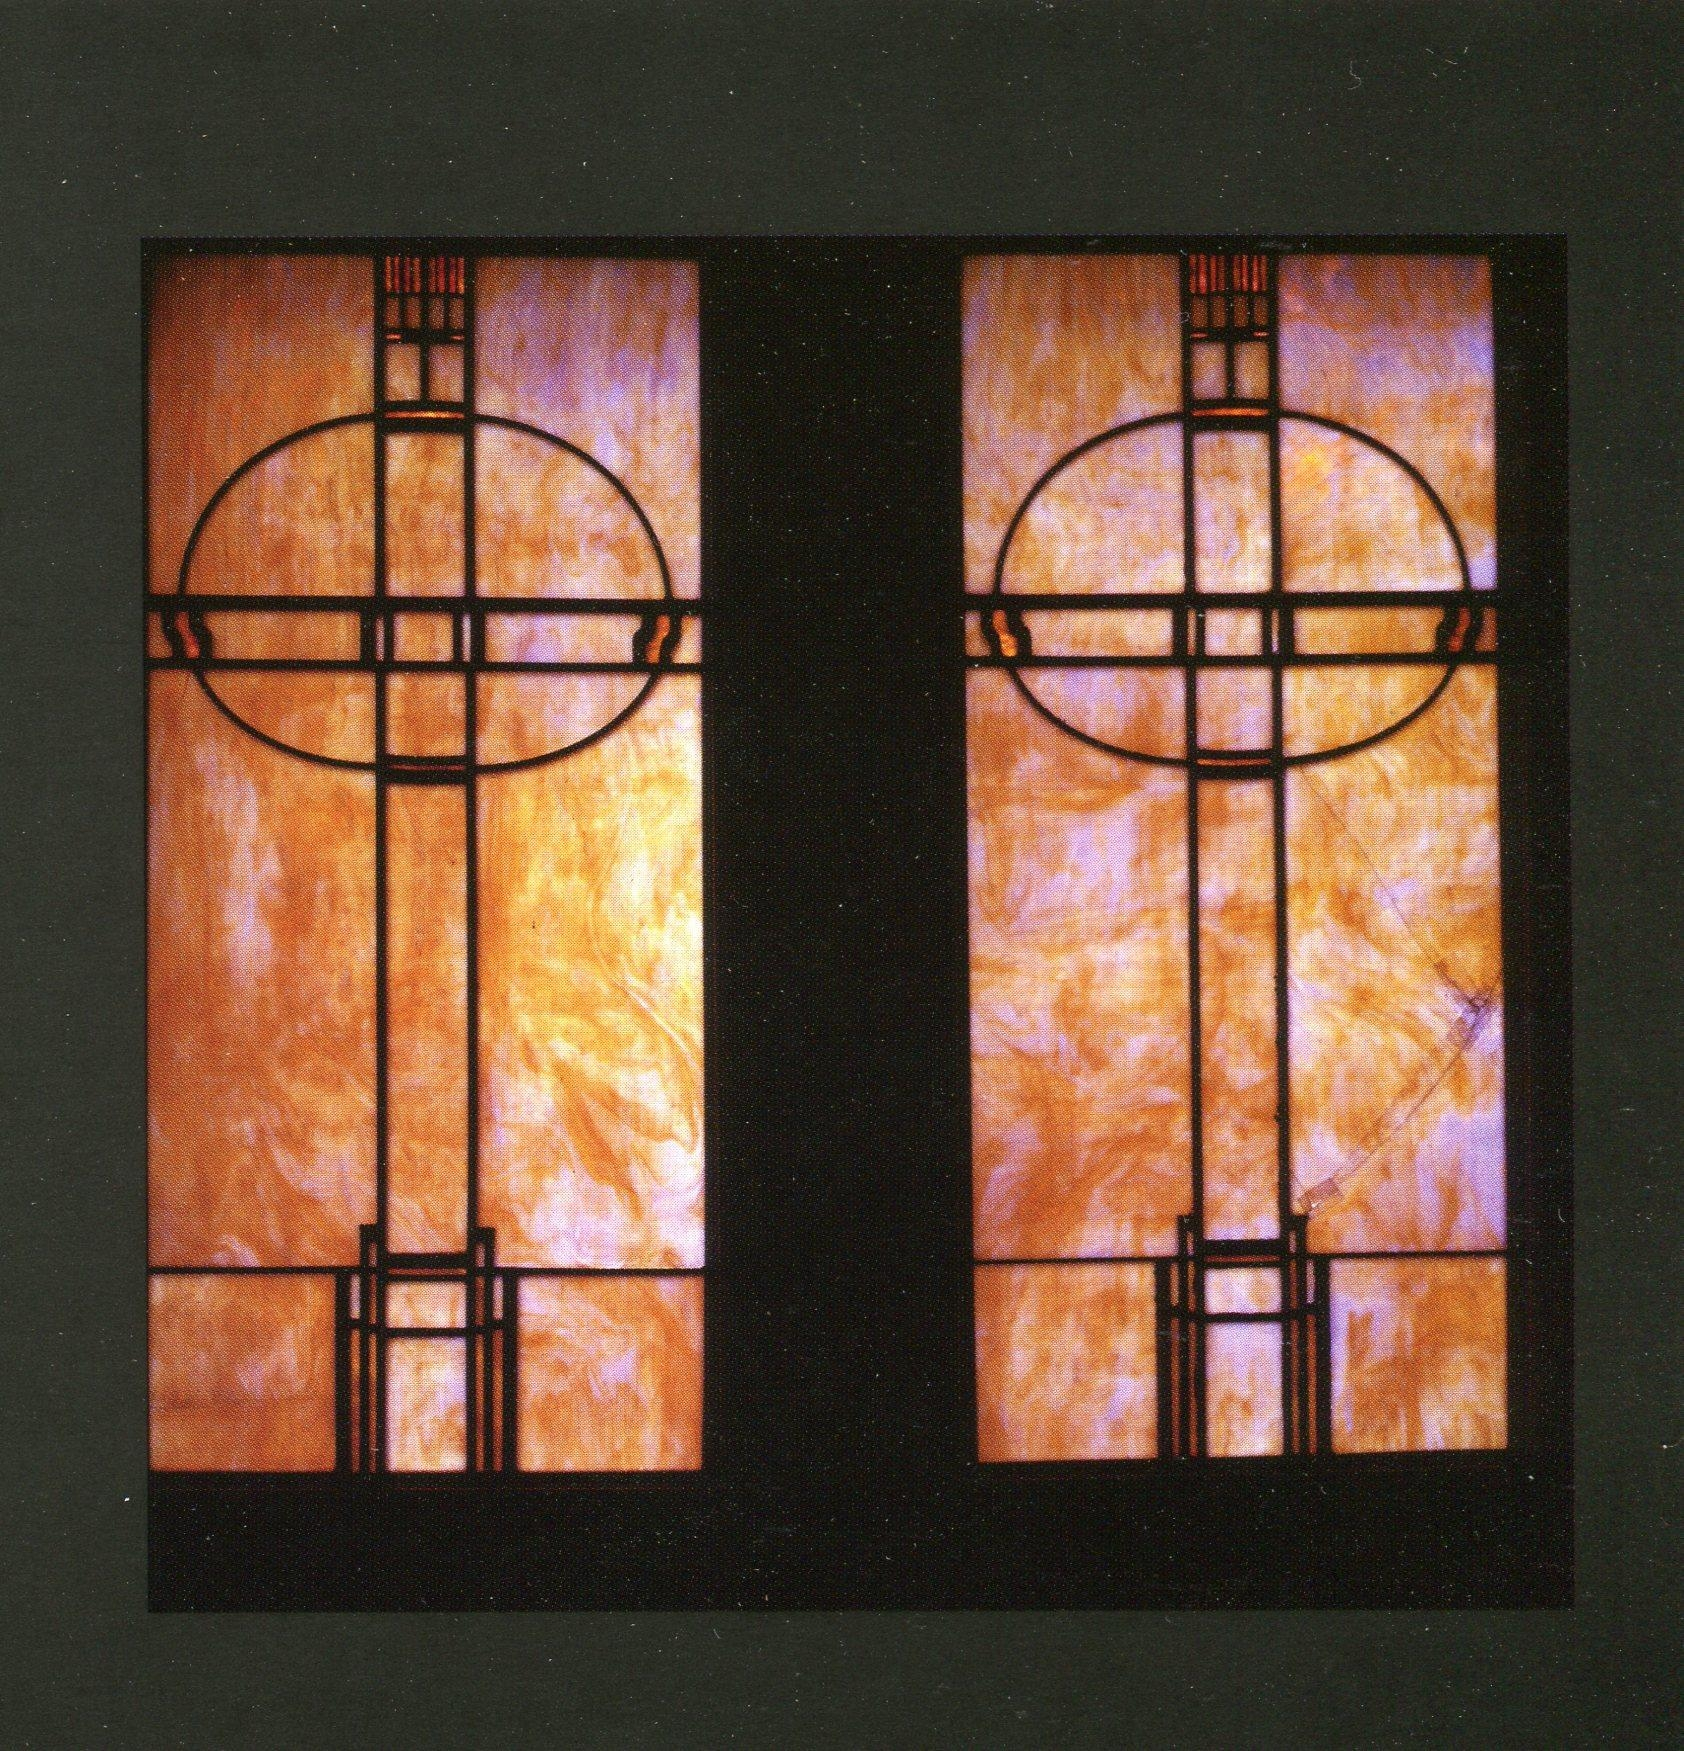 Stained Glass Designs Of Frank Lloyd Wright – Grainger Arts With Frank Lloyd Wright Wall Art (View 19 of 20)